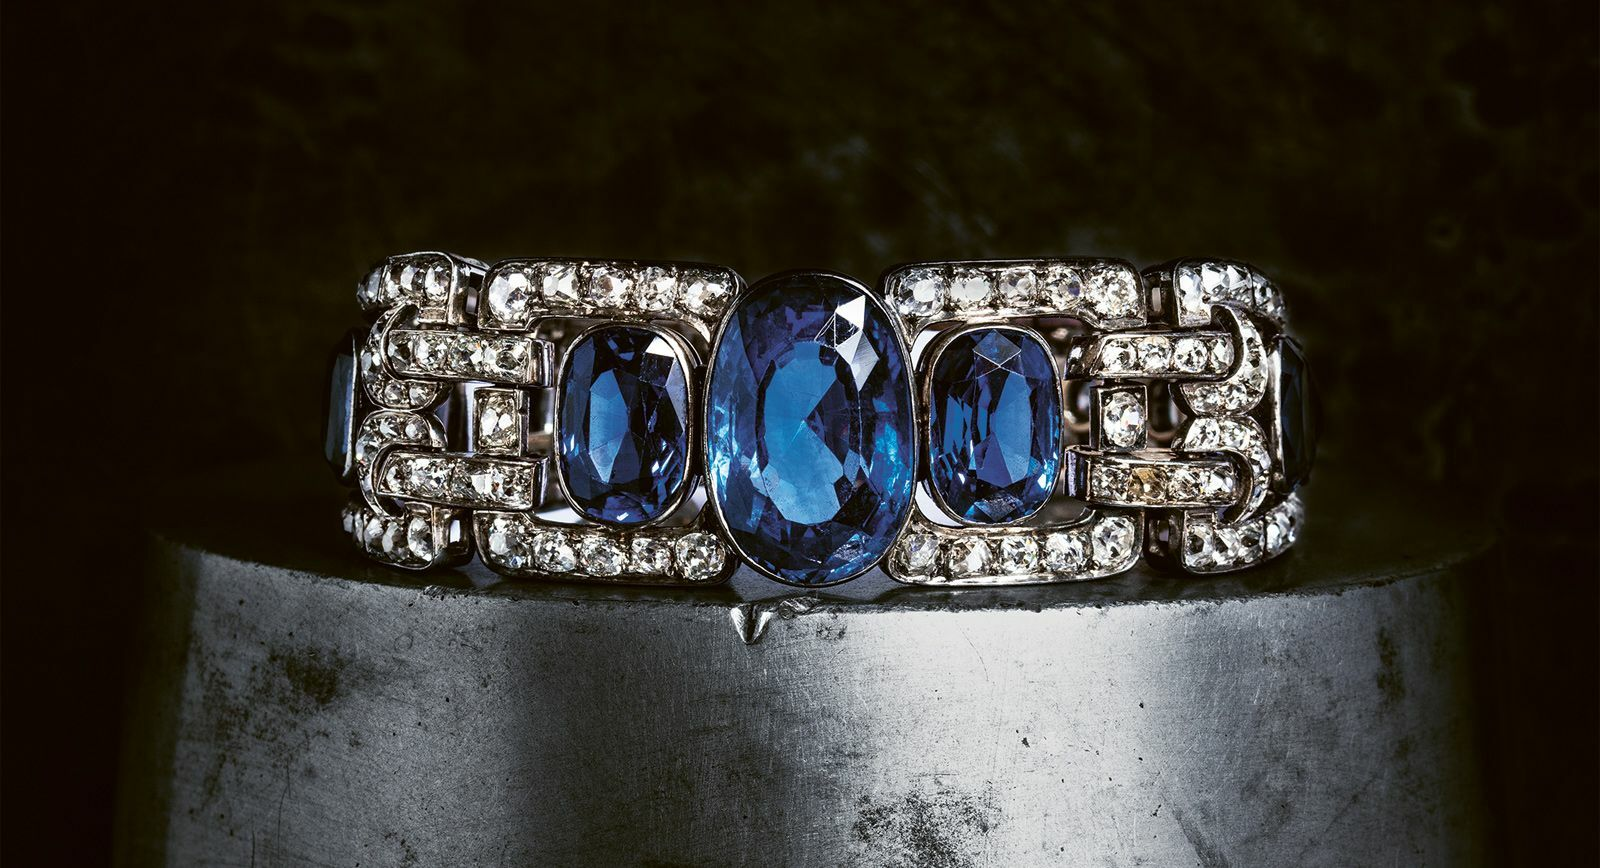 A New Must-See Exhibition By Chaumet: Imperial Splendours: The Art of Jewellery Since The 18th Century